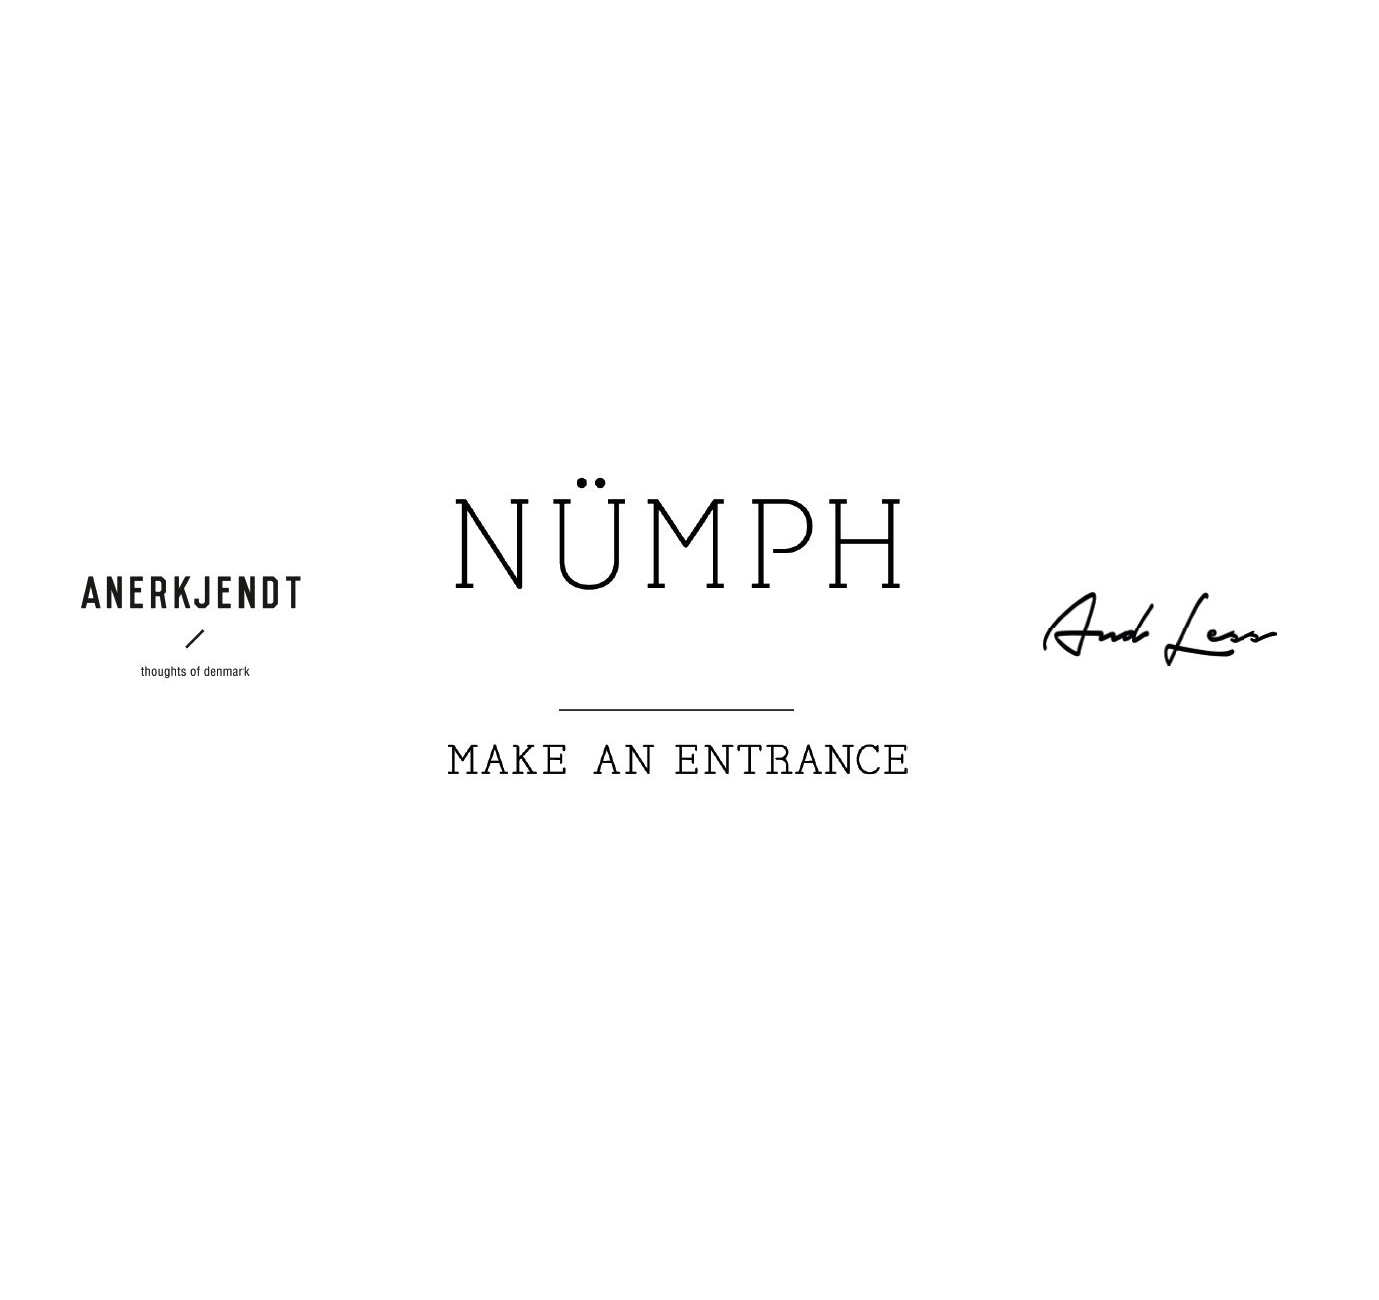 Nümph - Make an entrance - Anerkjendt - And Less